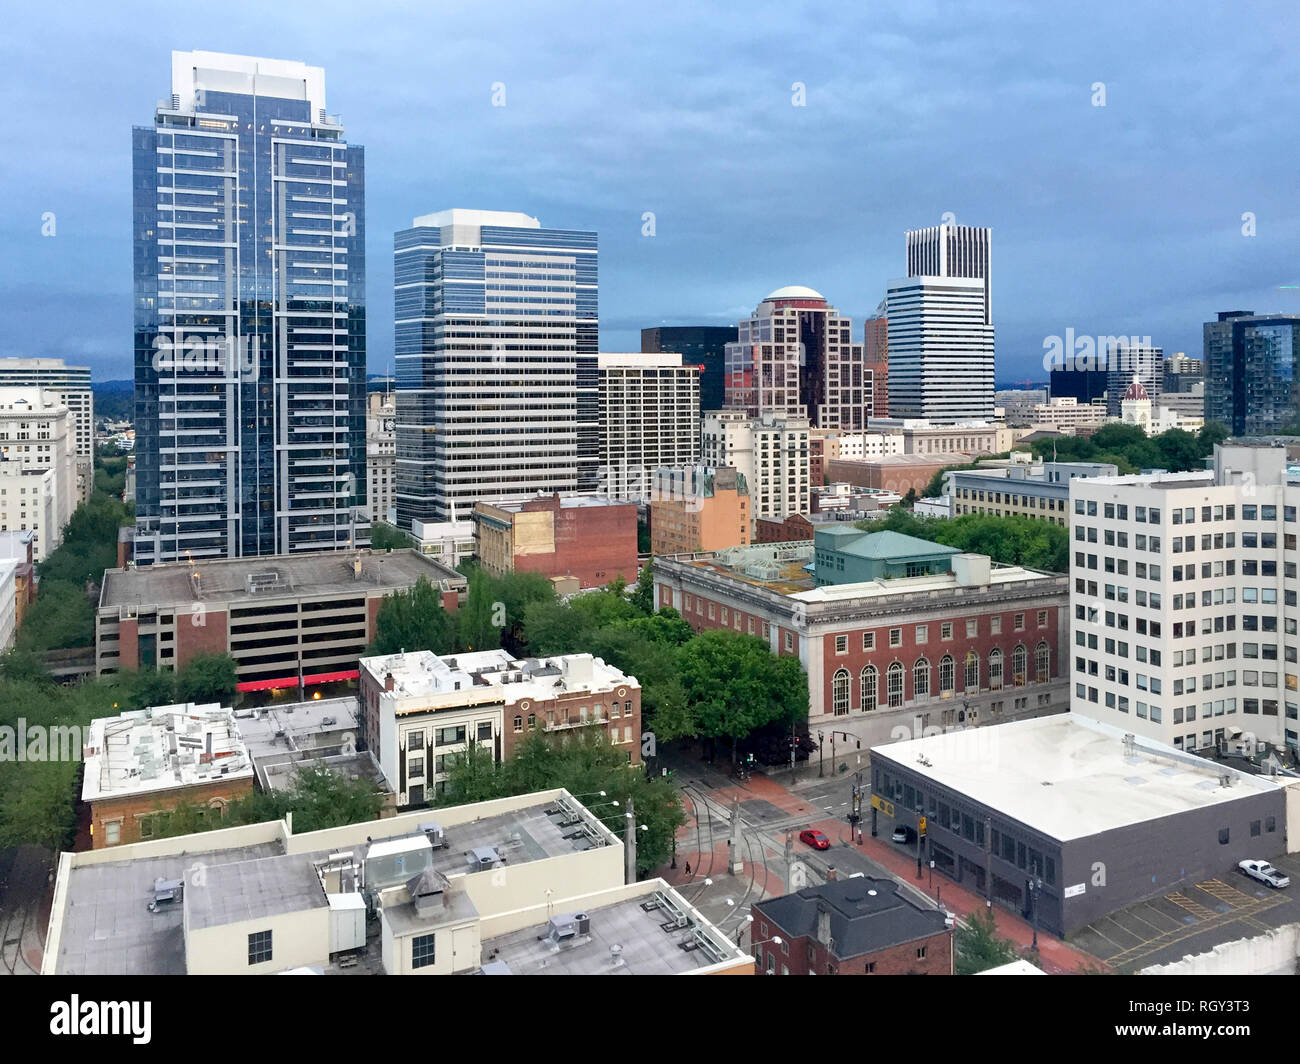 Downtown Portland Oregon aerial view from above Stock Photo